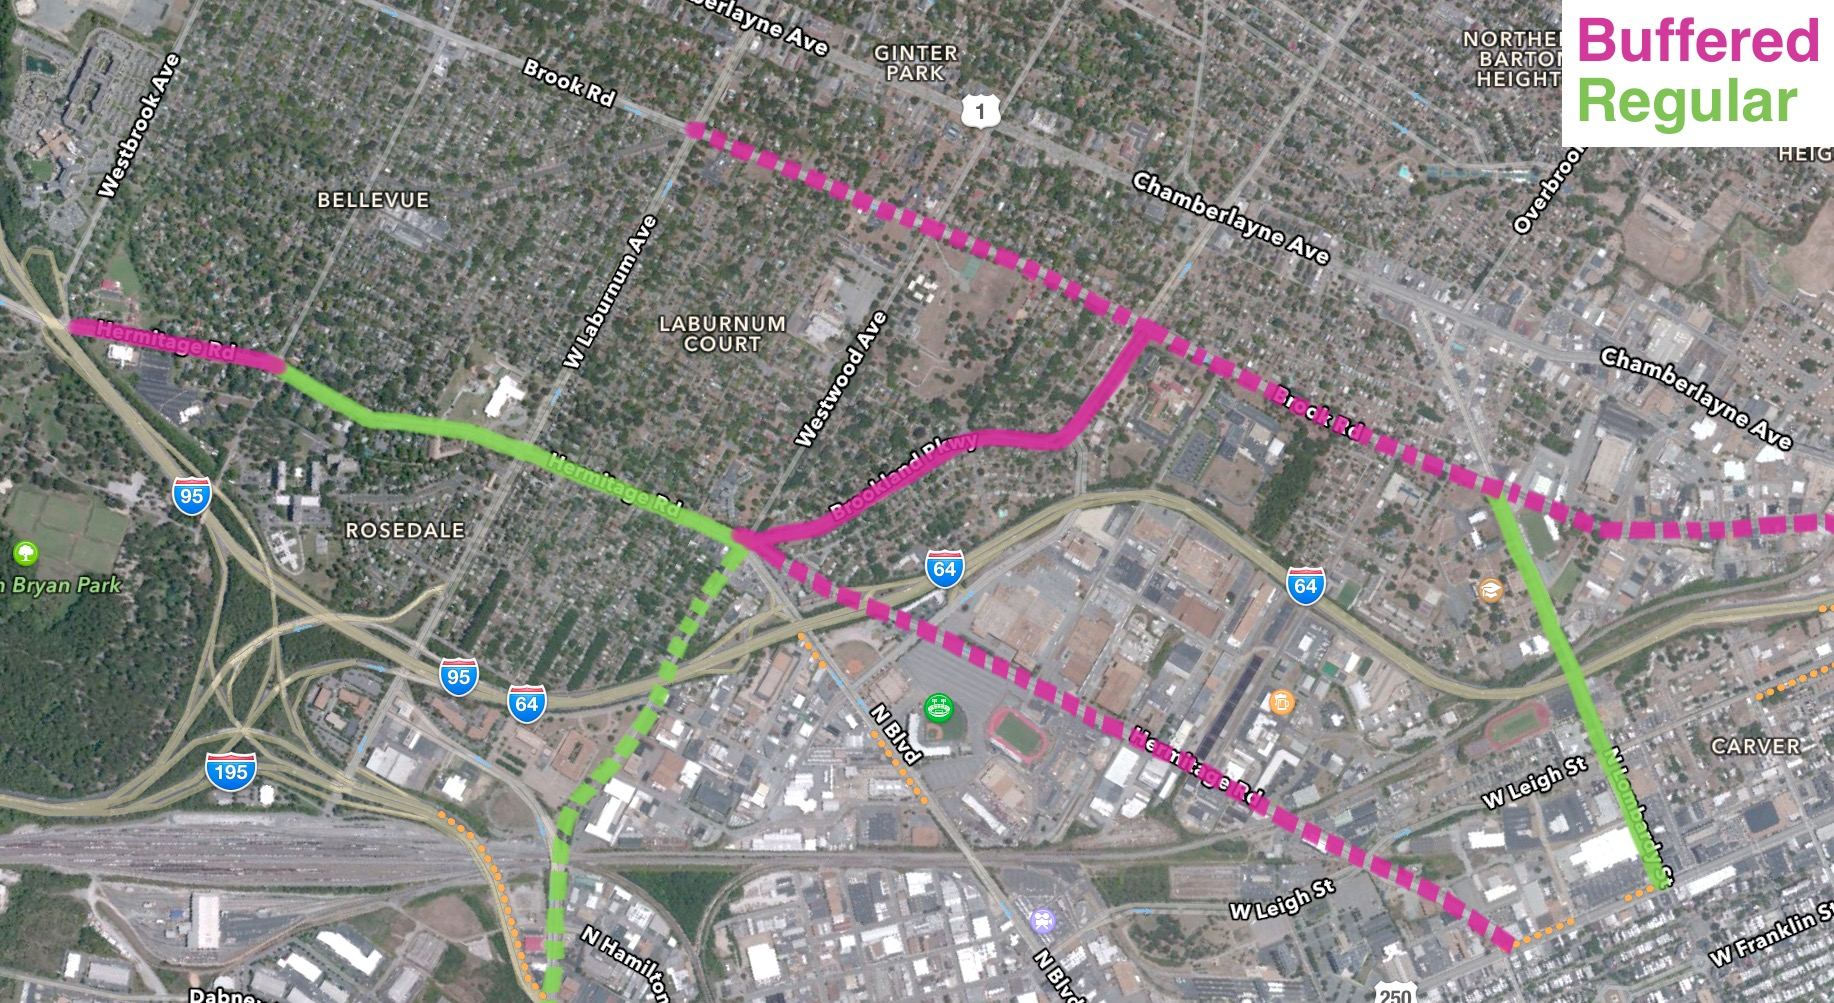 Buffered bike lanes in pink, regular bike lanes in green, suggested/future project in dotted.